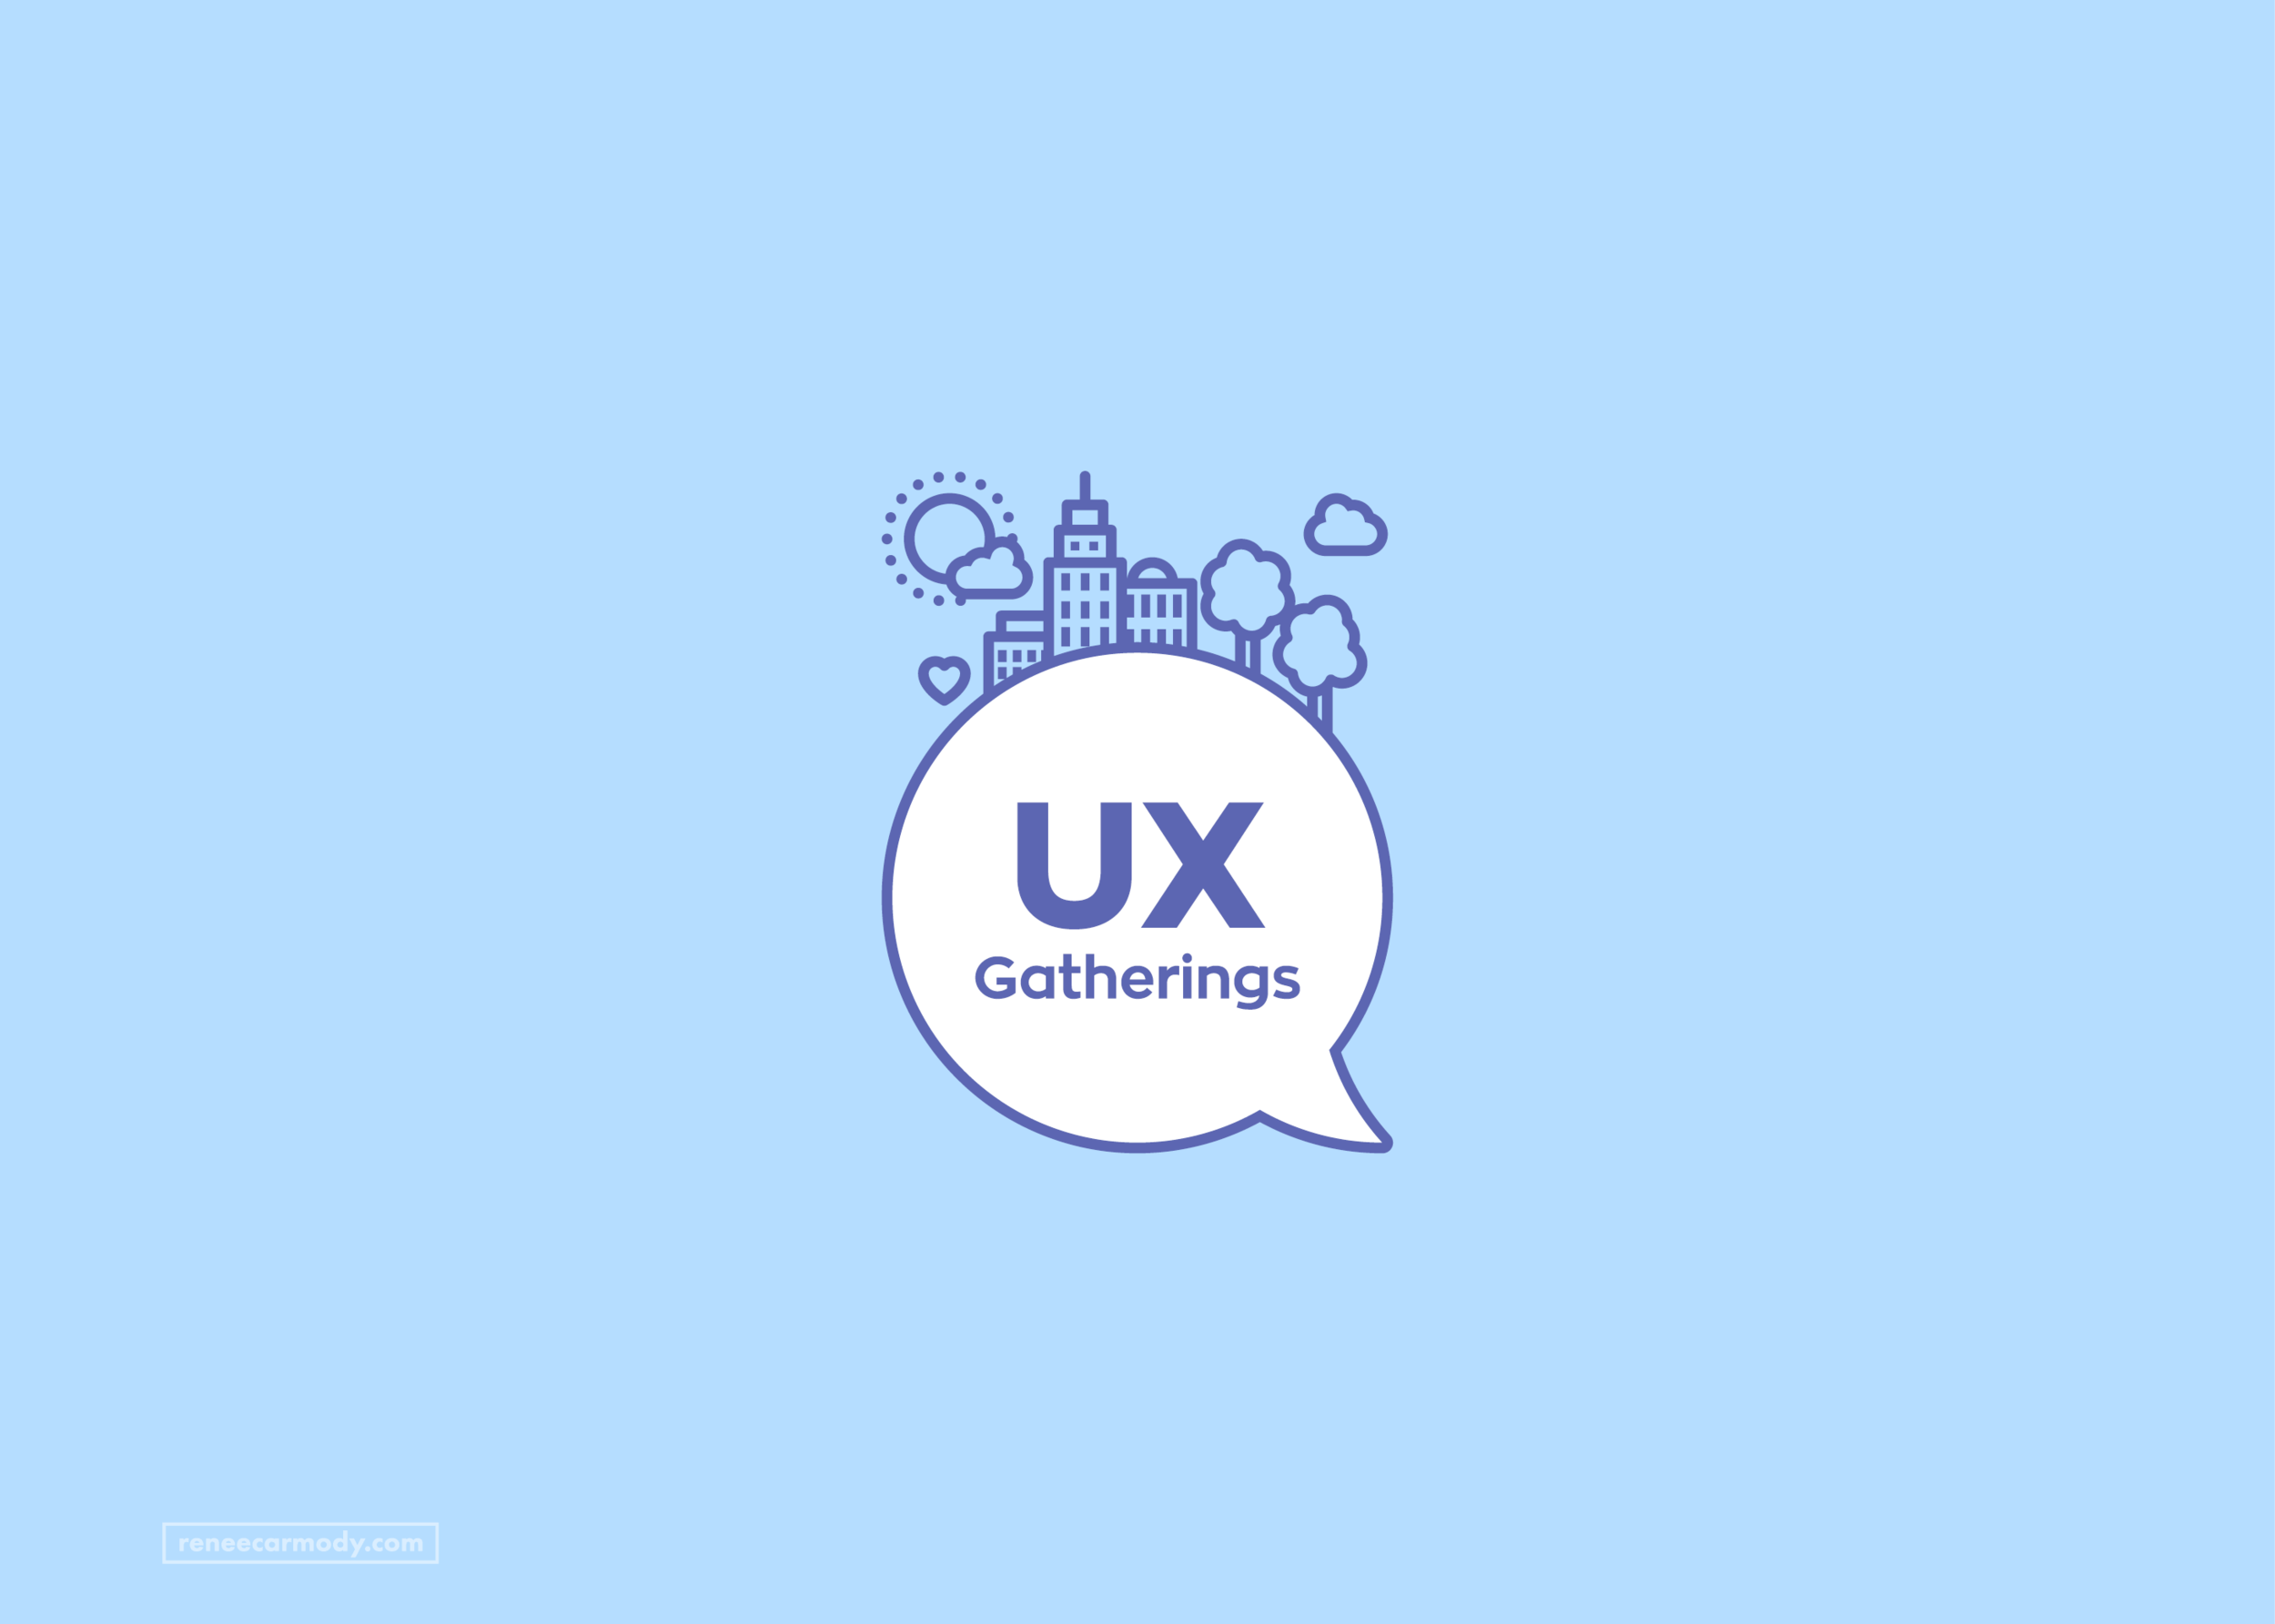 Logo, brand and website design   UX Gatherings   VIEW PROJECT